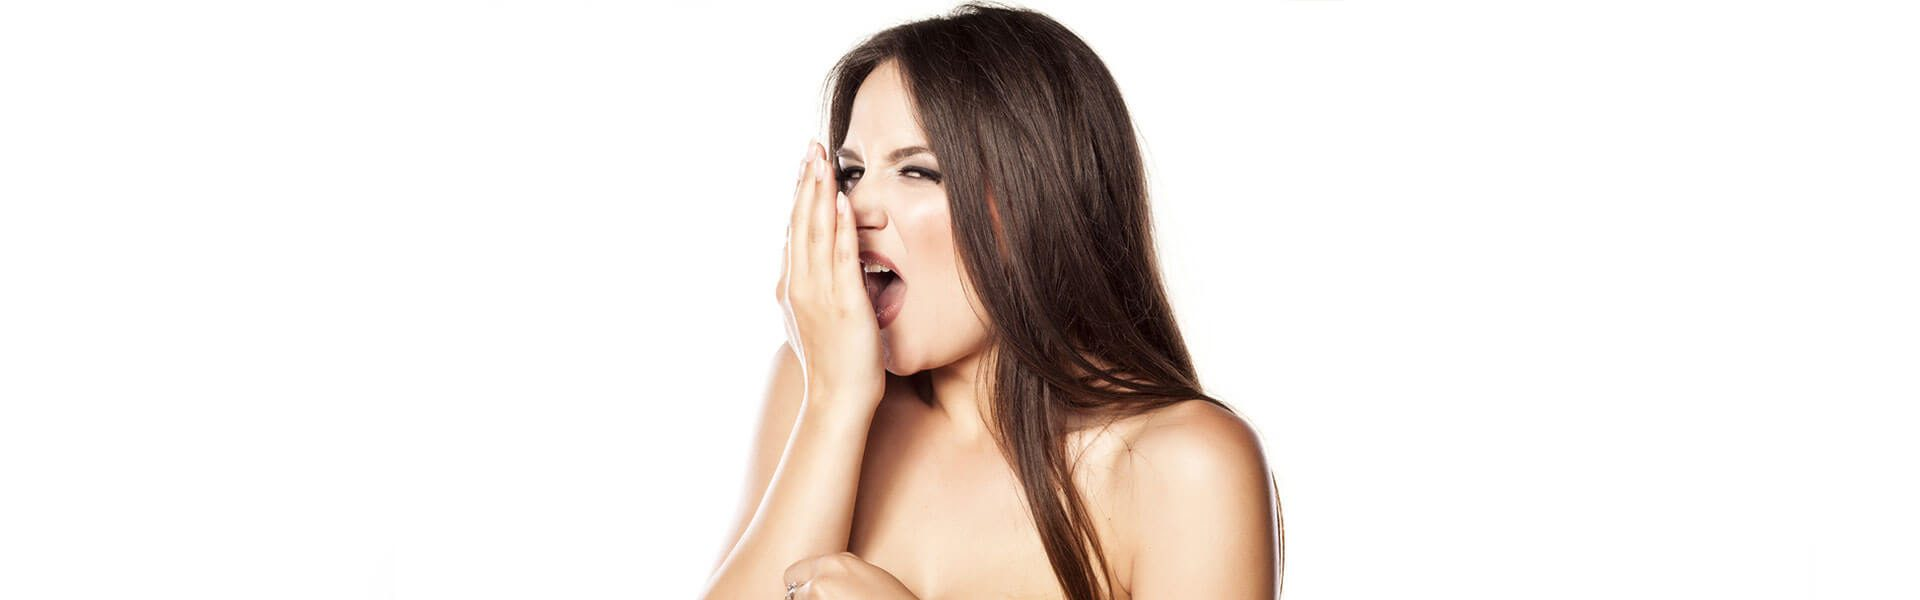 Get Rid of Bad Breath with Good Dental Care